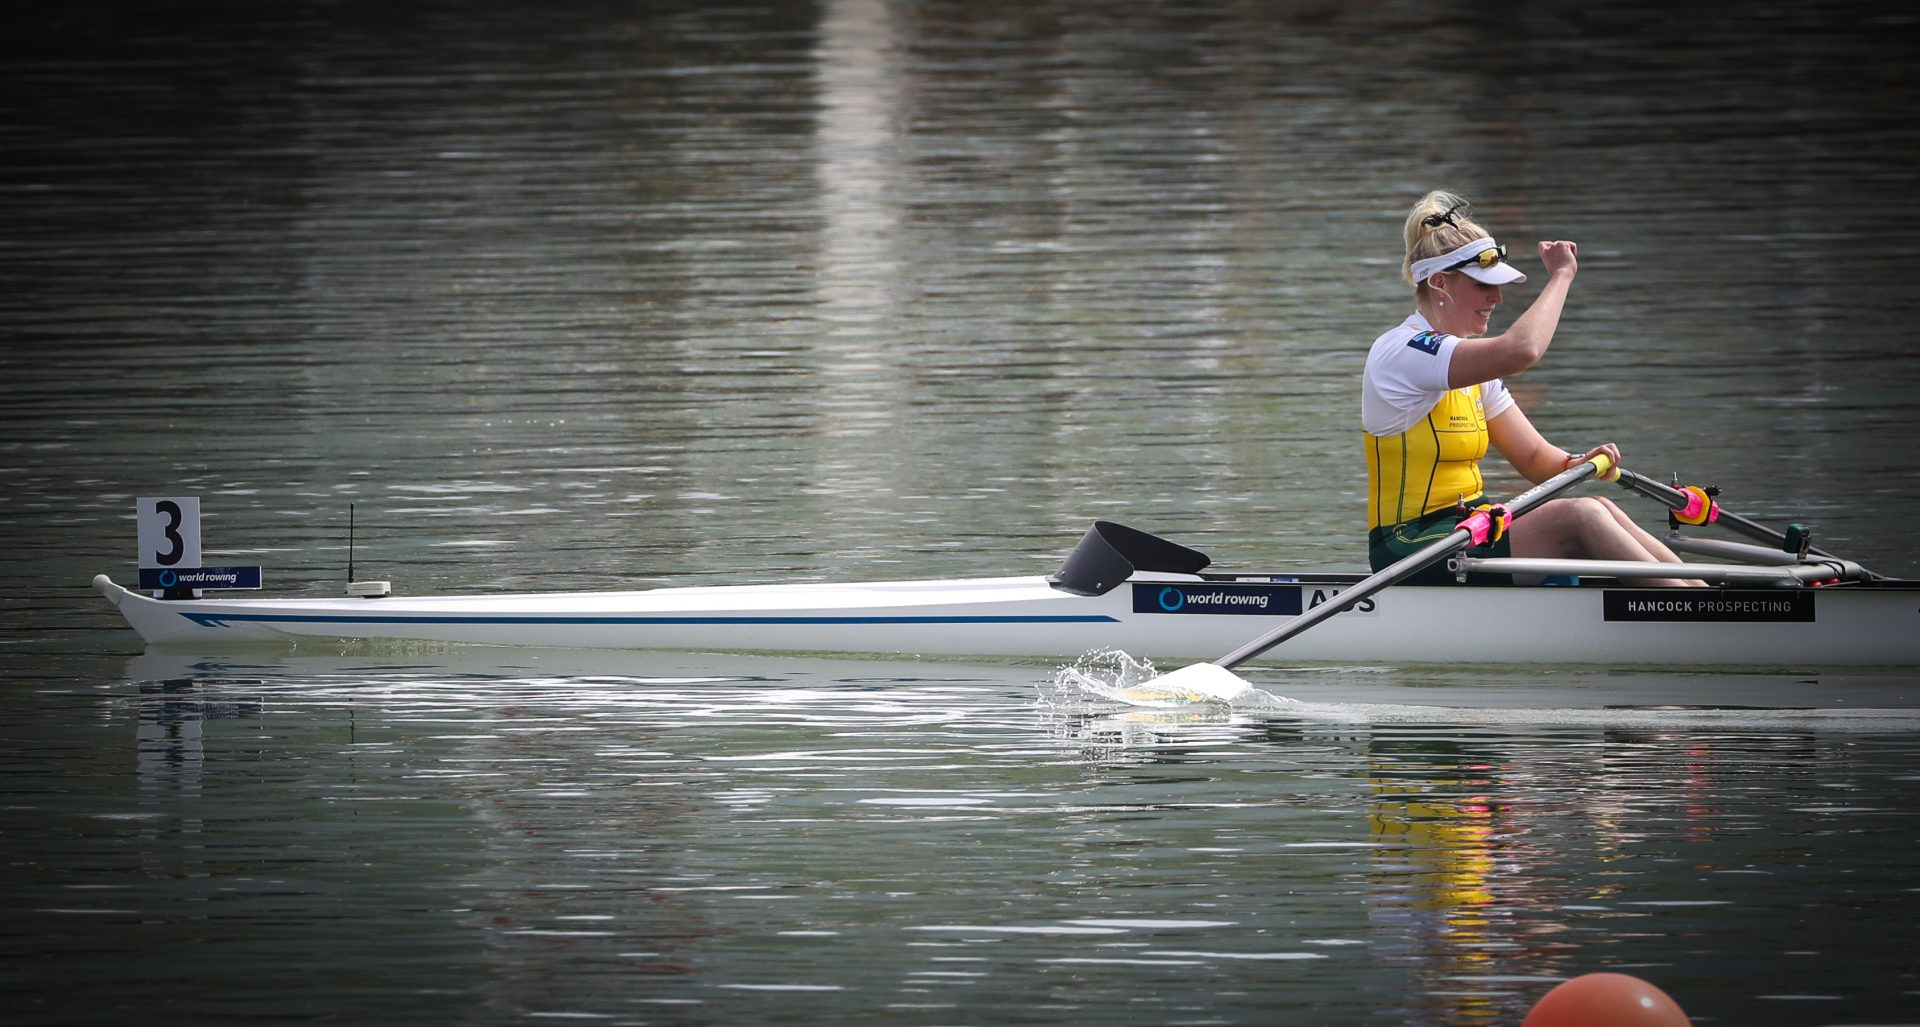 Fist Pump for First - Kathryn Ross - - Copyright Rowing Australia